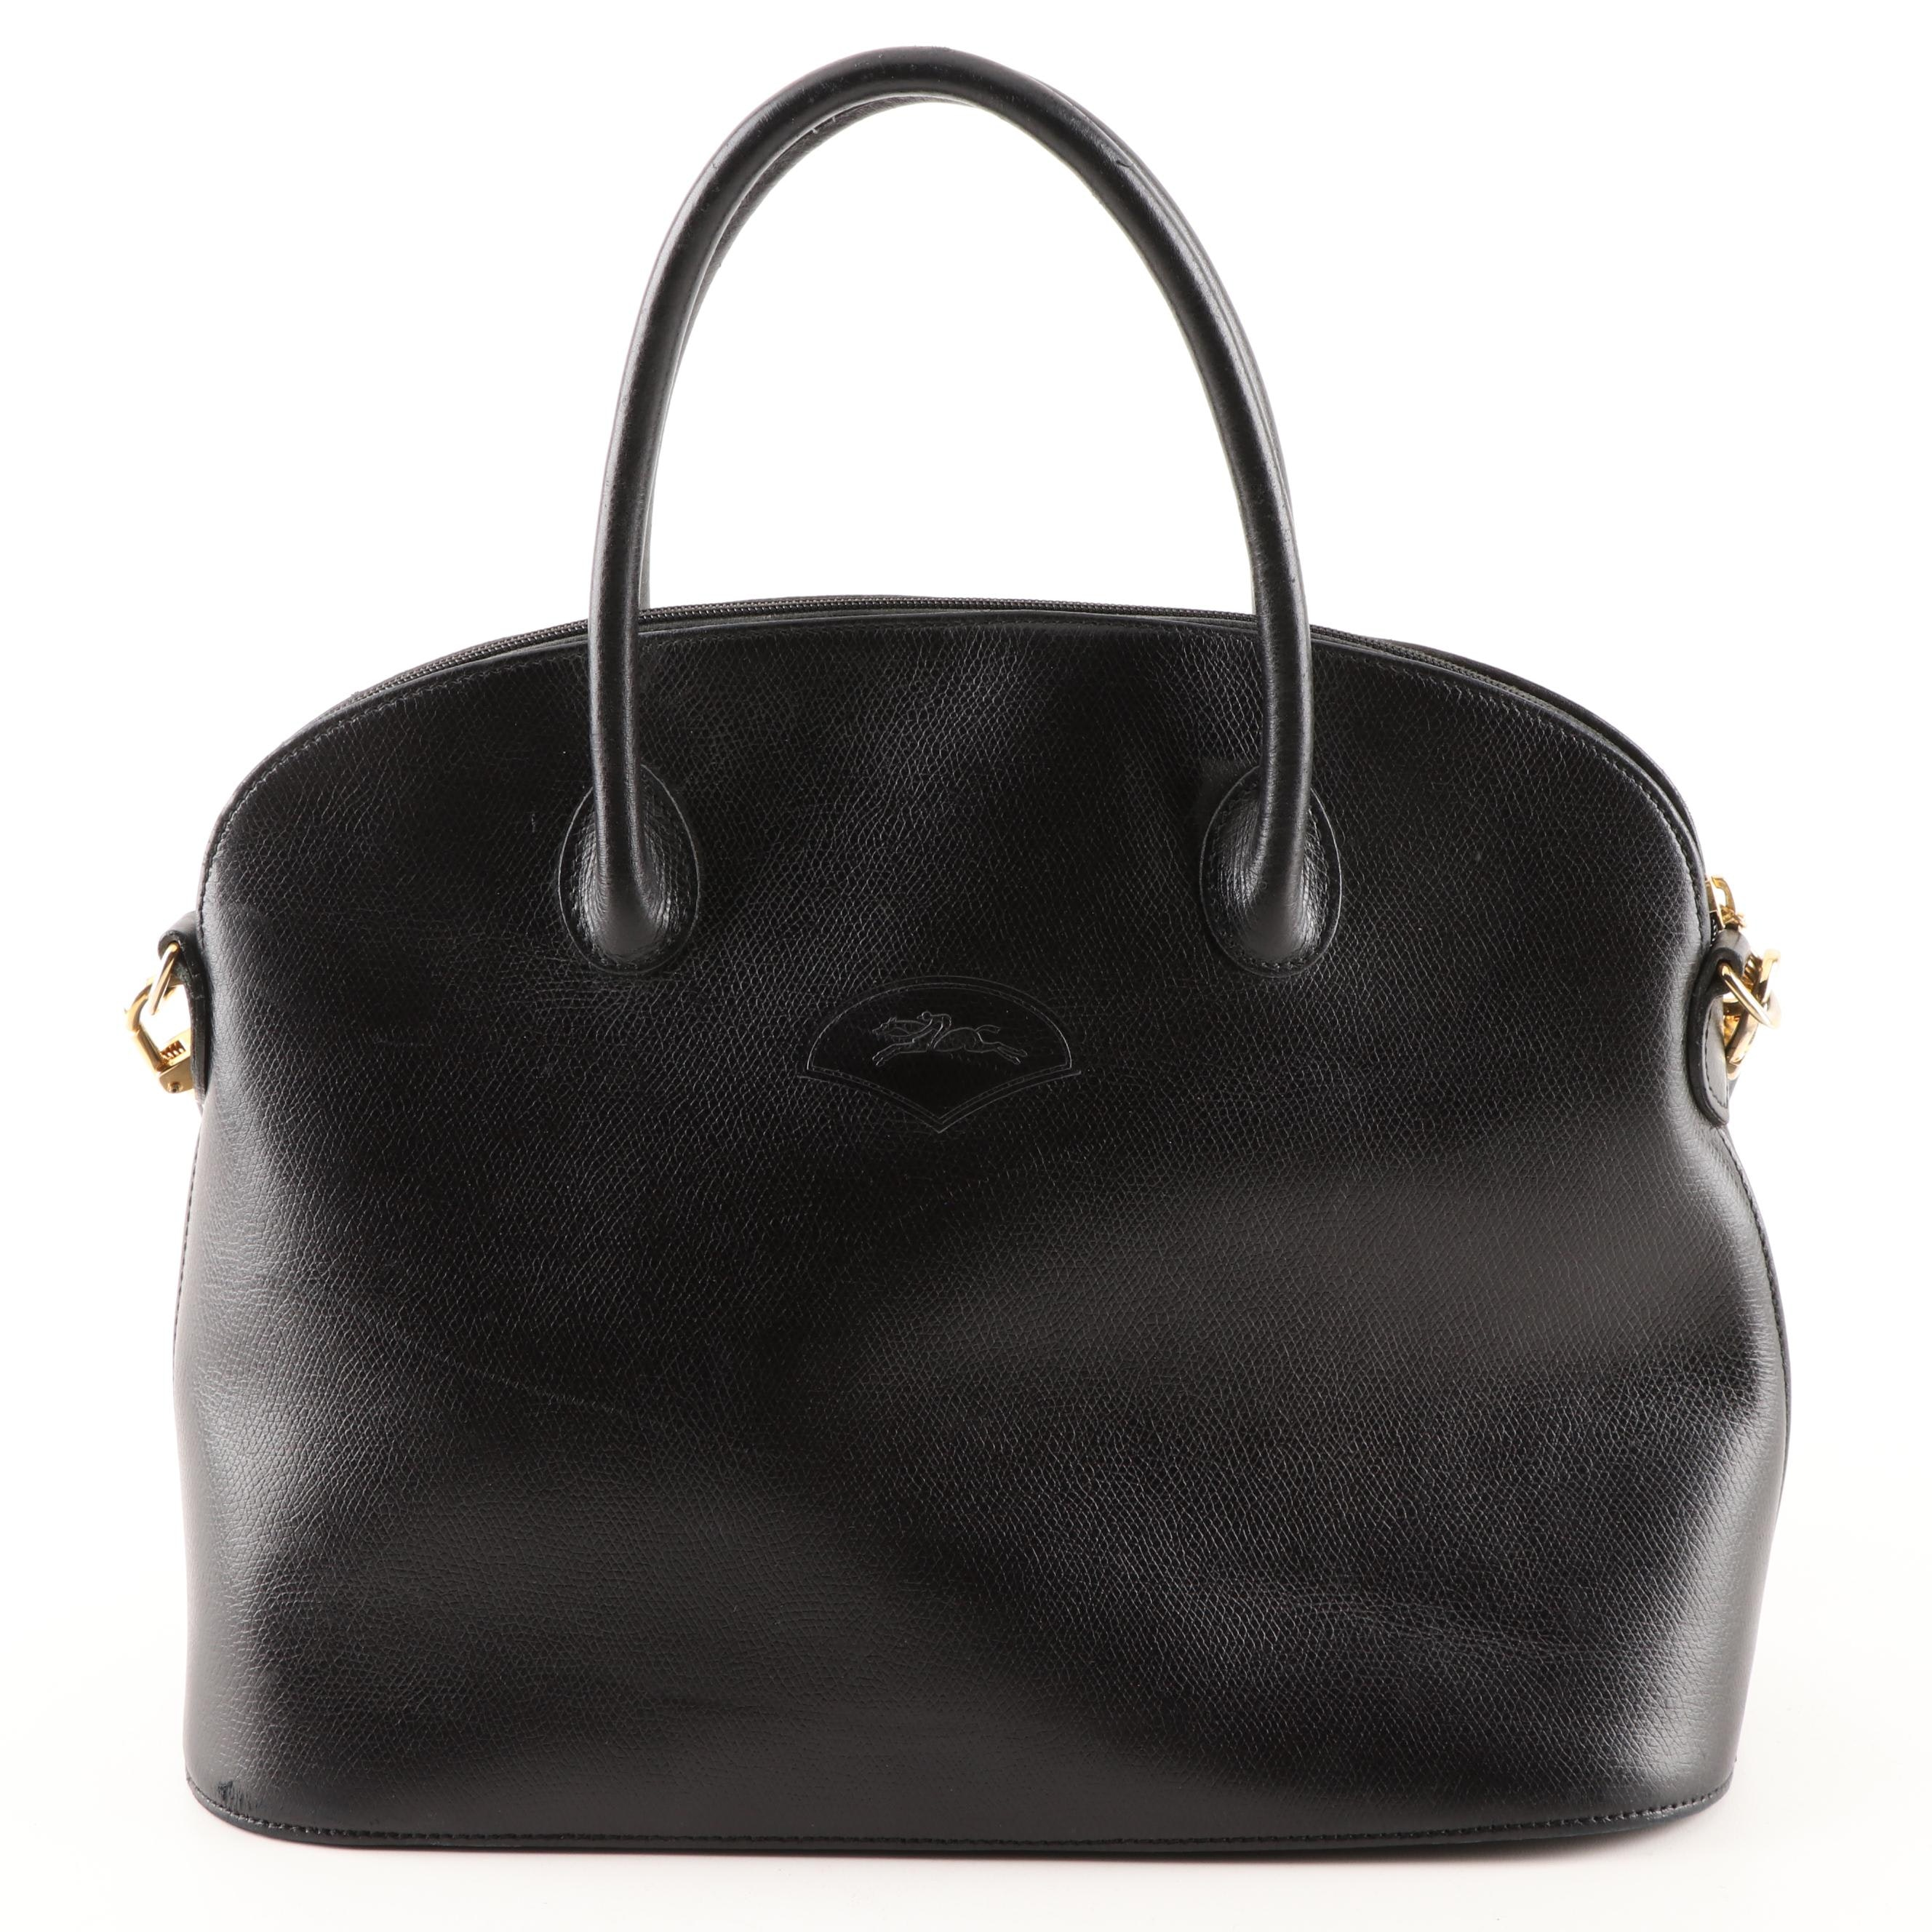 Longchamp Black Grained Leather Tote Bag